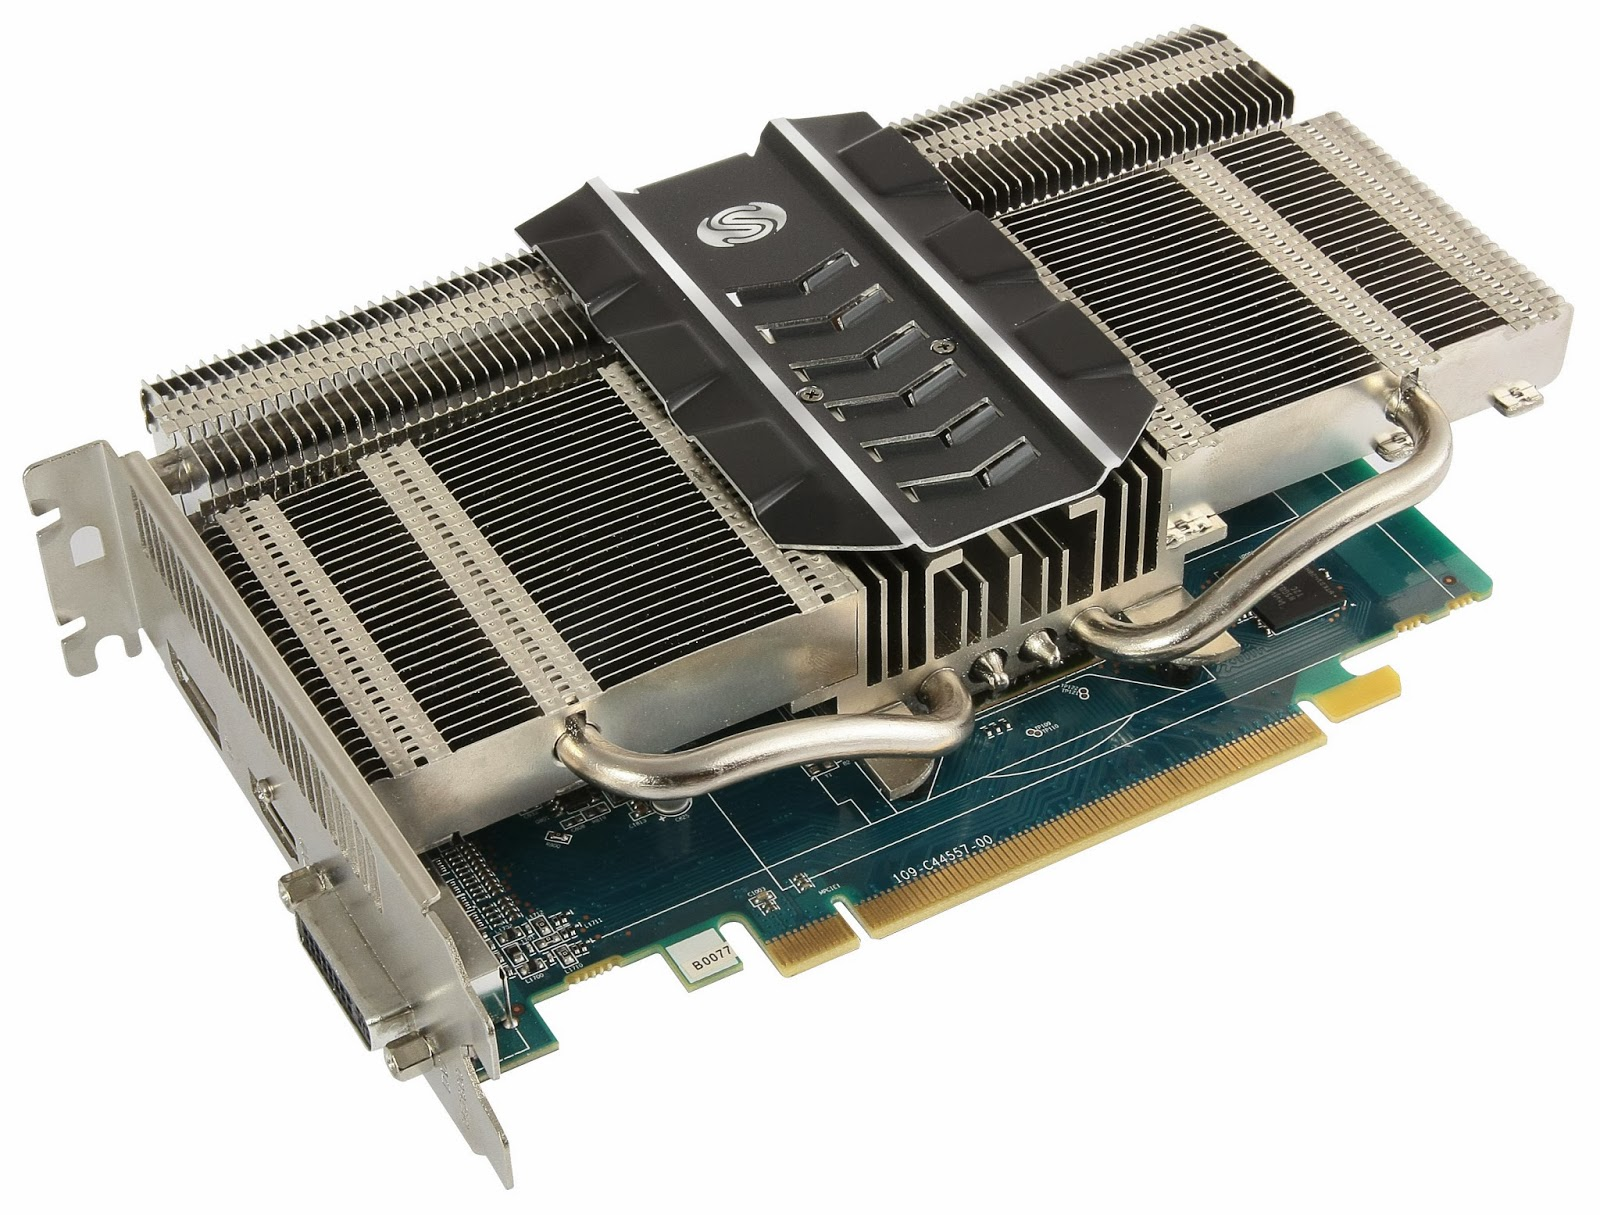 SAPPHIRE ULTIMATE IS FIRST SILENT R-SERIES CARD 6